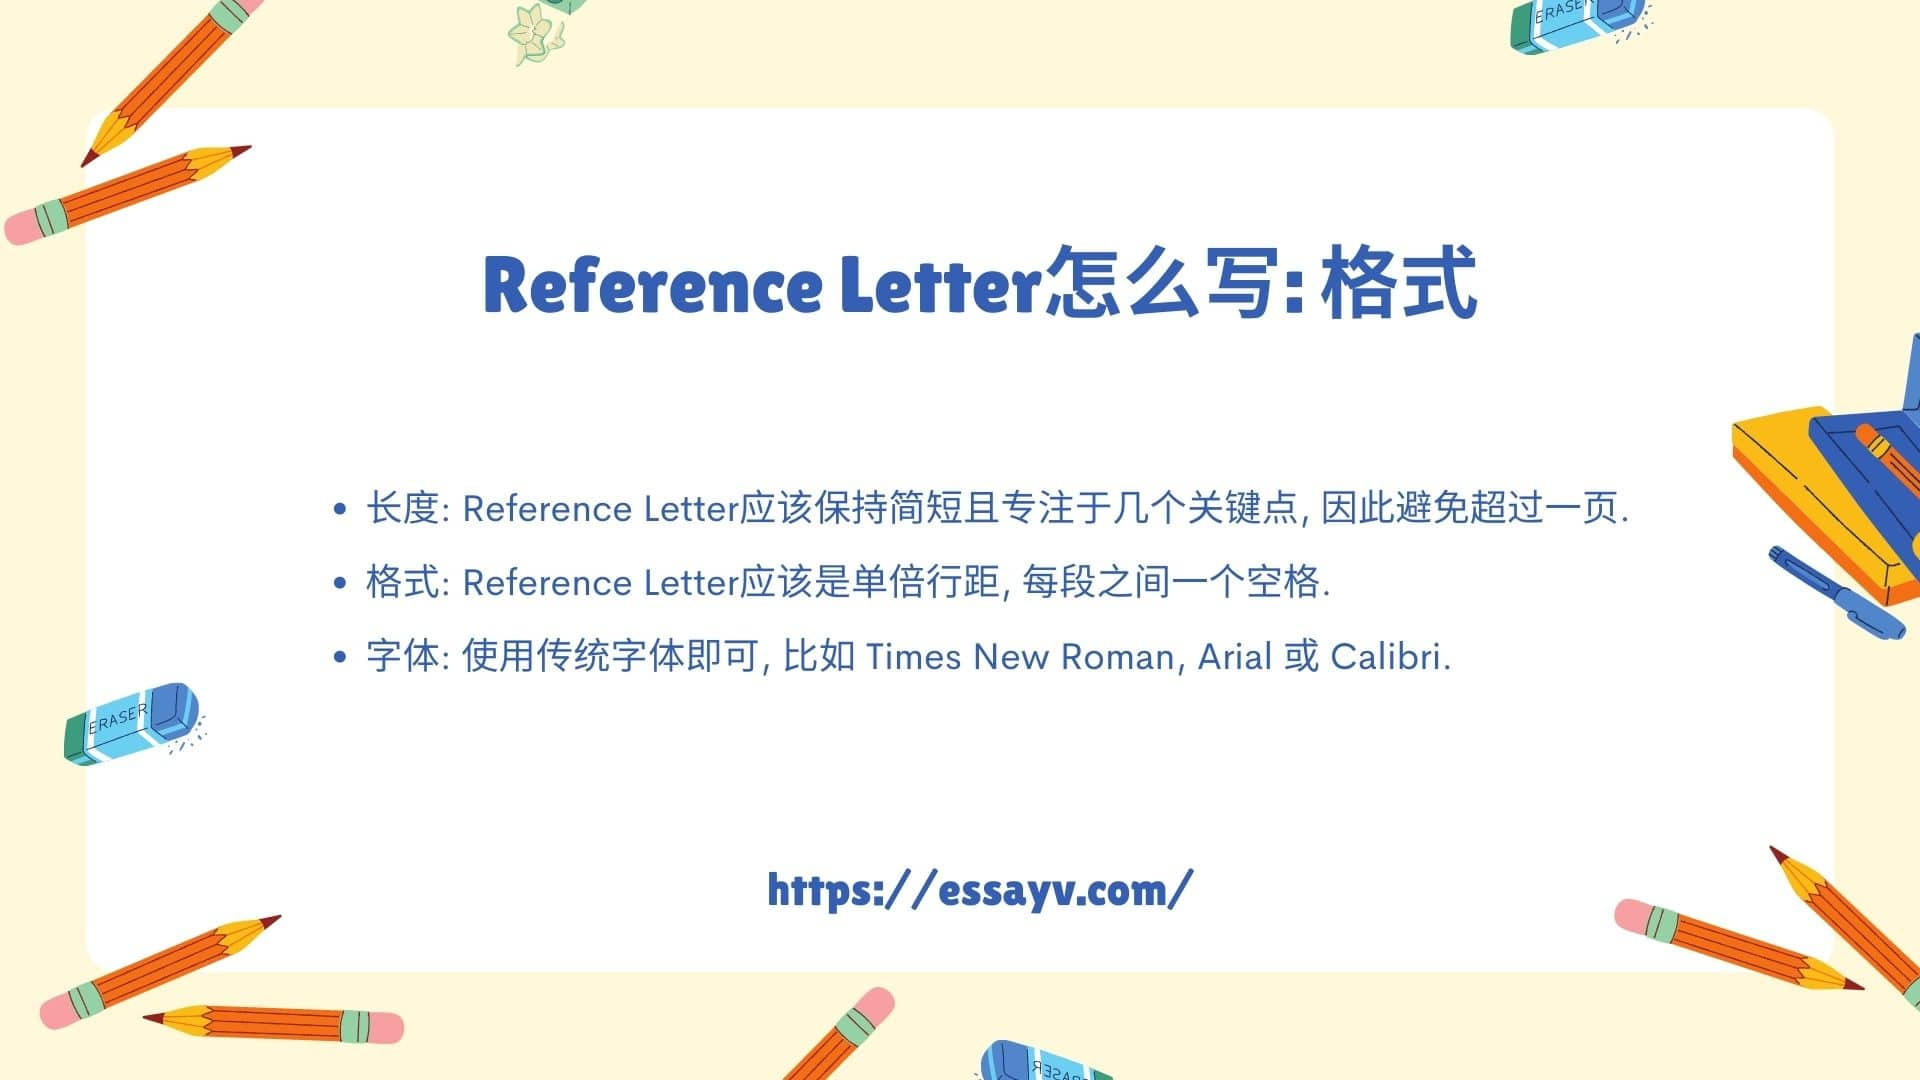 Reference Letter怎么写 格式